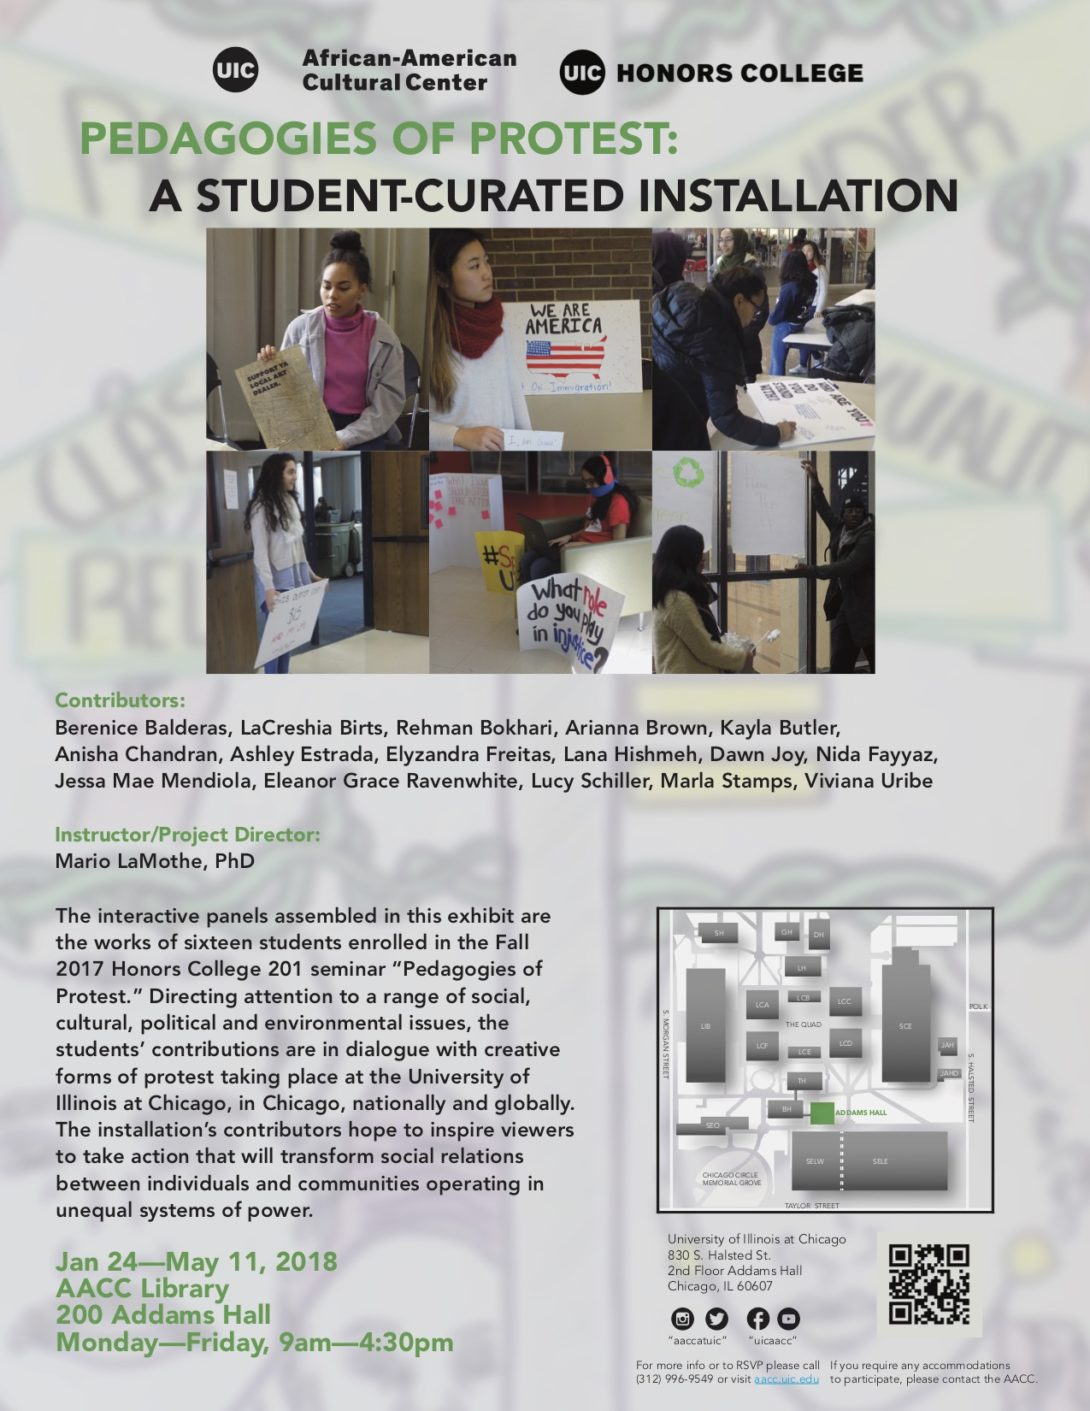 Pedagogies of Protest: A Student-Curated Installation